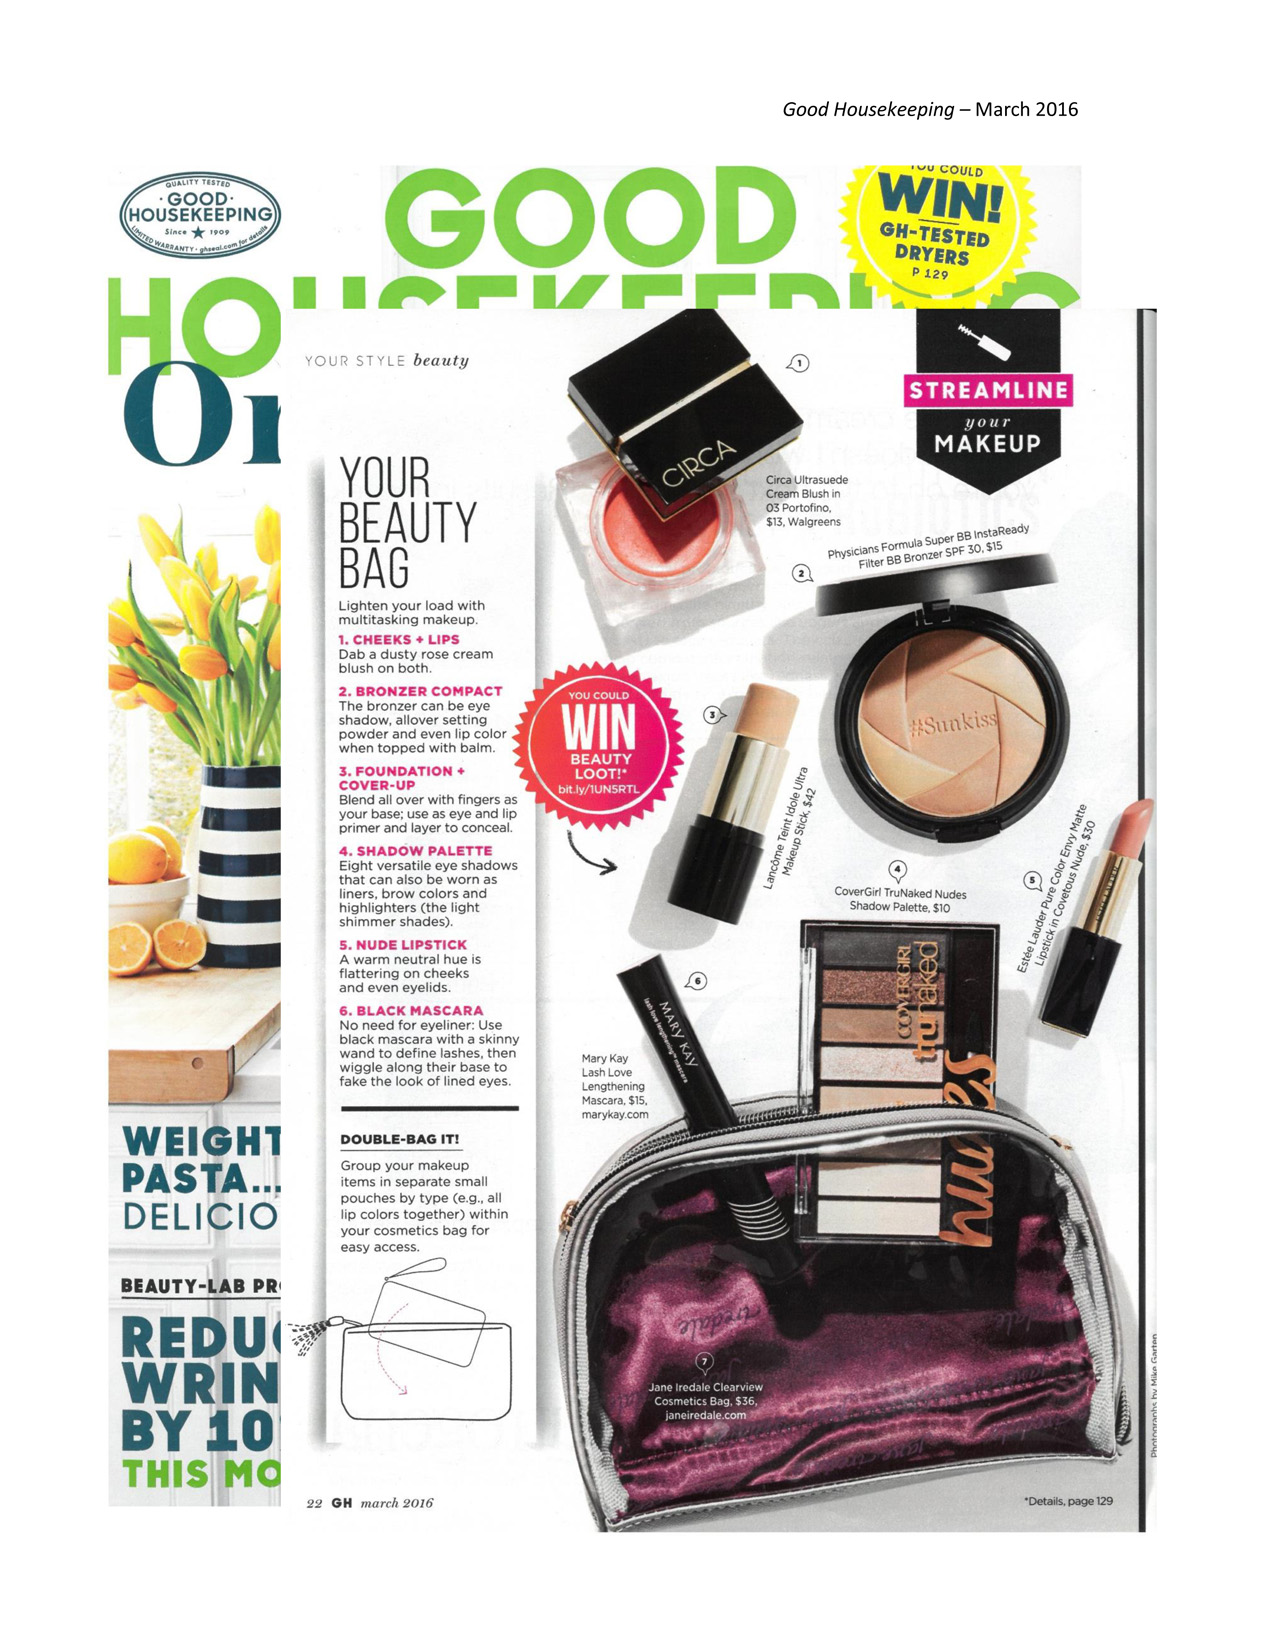 ... Mascara as mentioned in Good Housekeeping ® magazine, March 2016